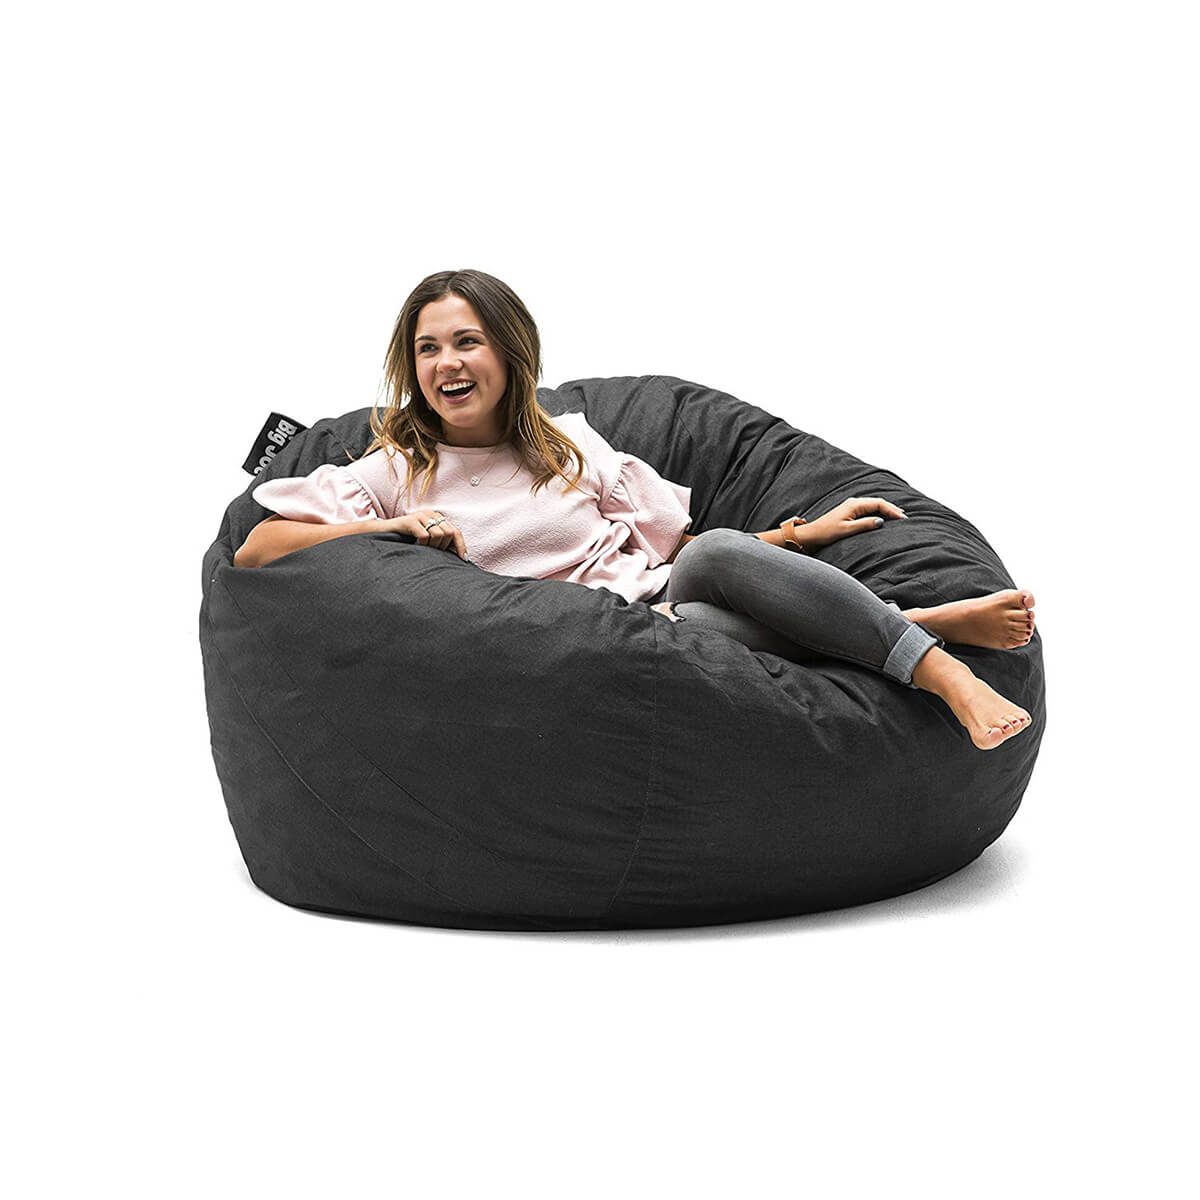 Big Joe Large Fuf Foam Chair in Black Lenox